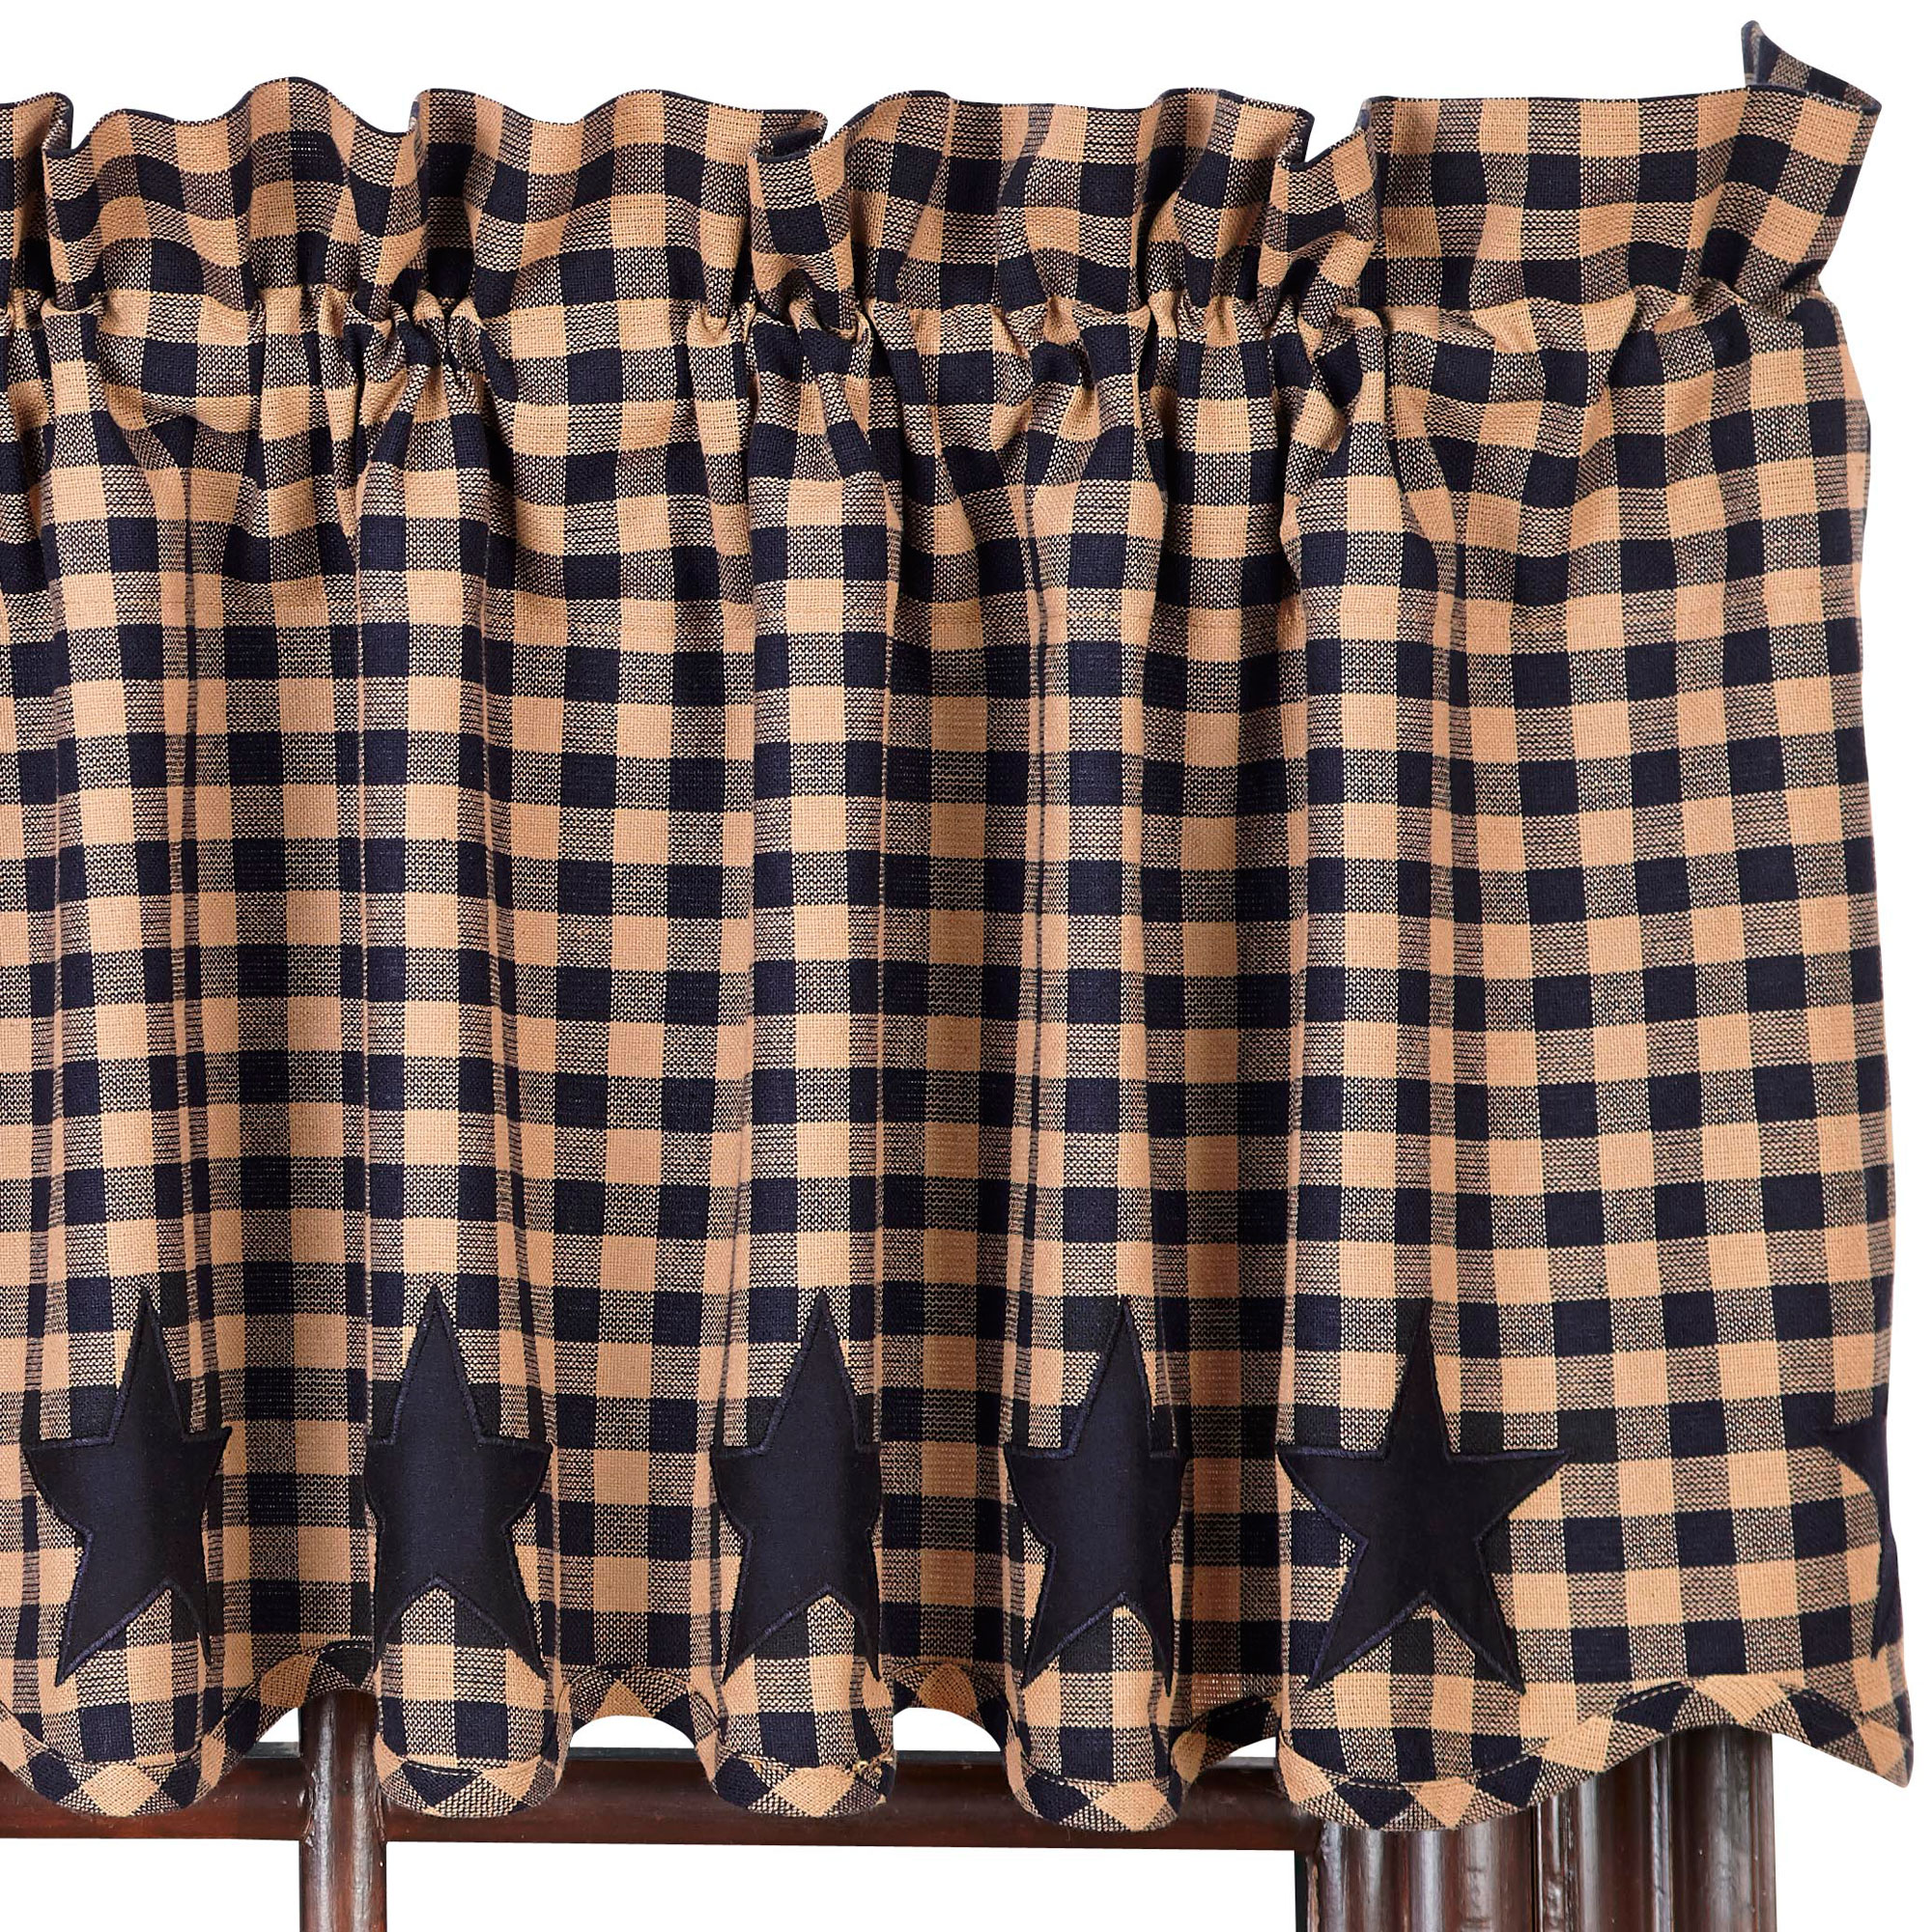 Star And Check Scalloped Country Curtain Valance Navy Black Or Burgundy 39 Ebay